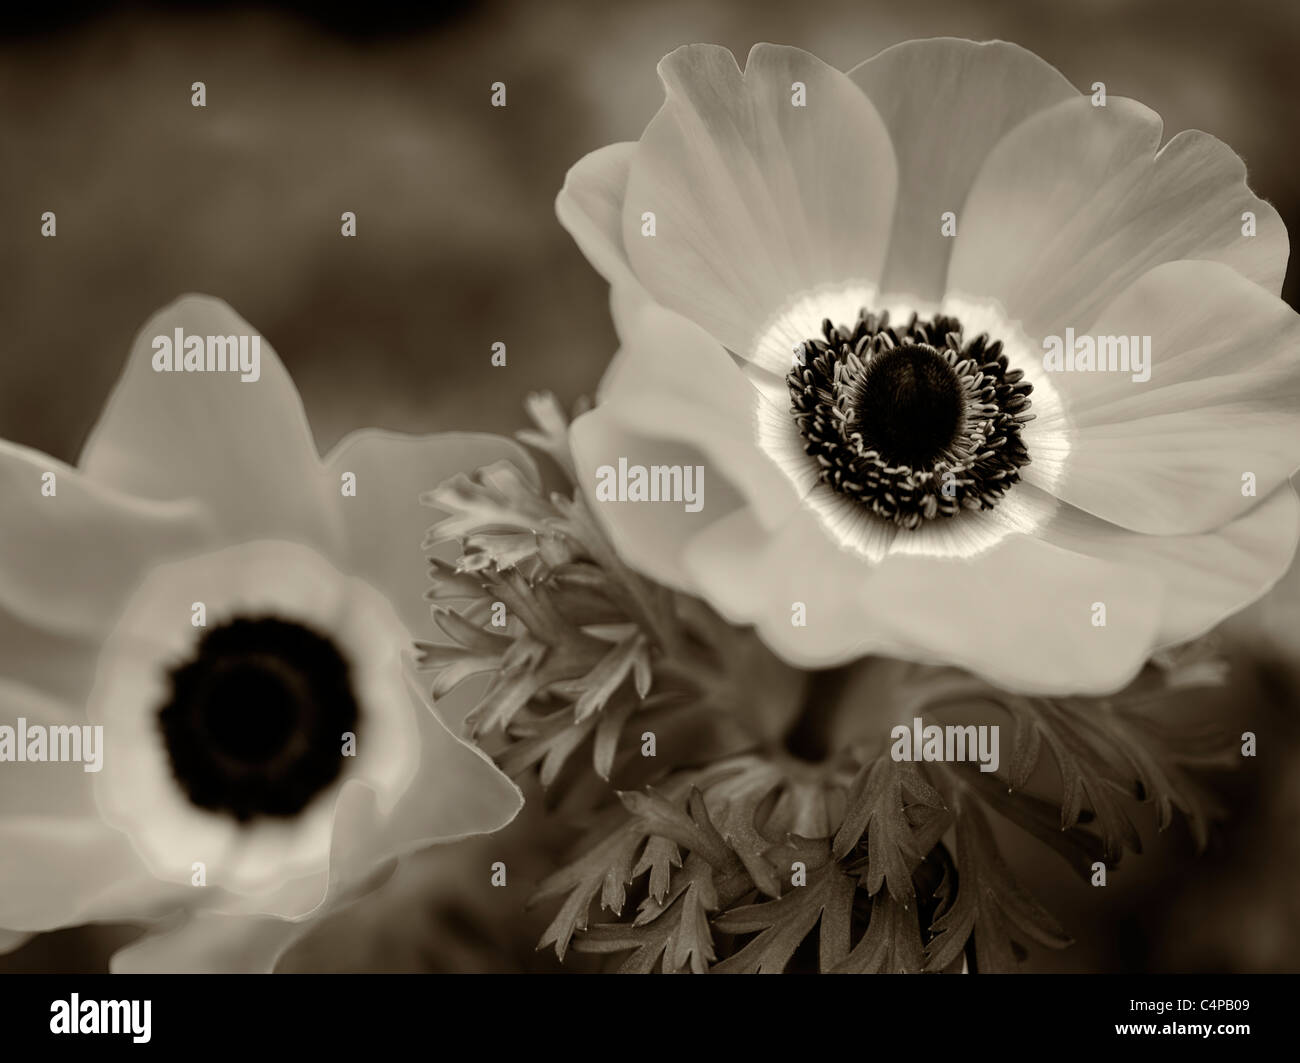 Close up of Harmony Scarlet Anemone - Stock Image